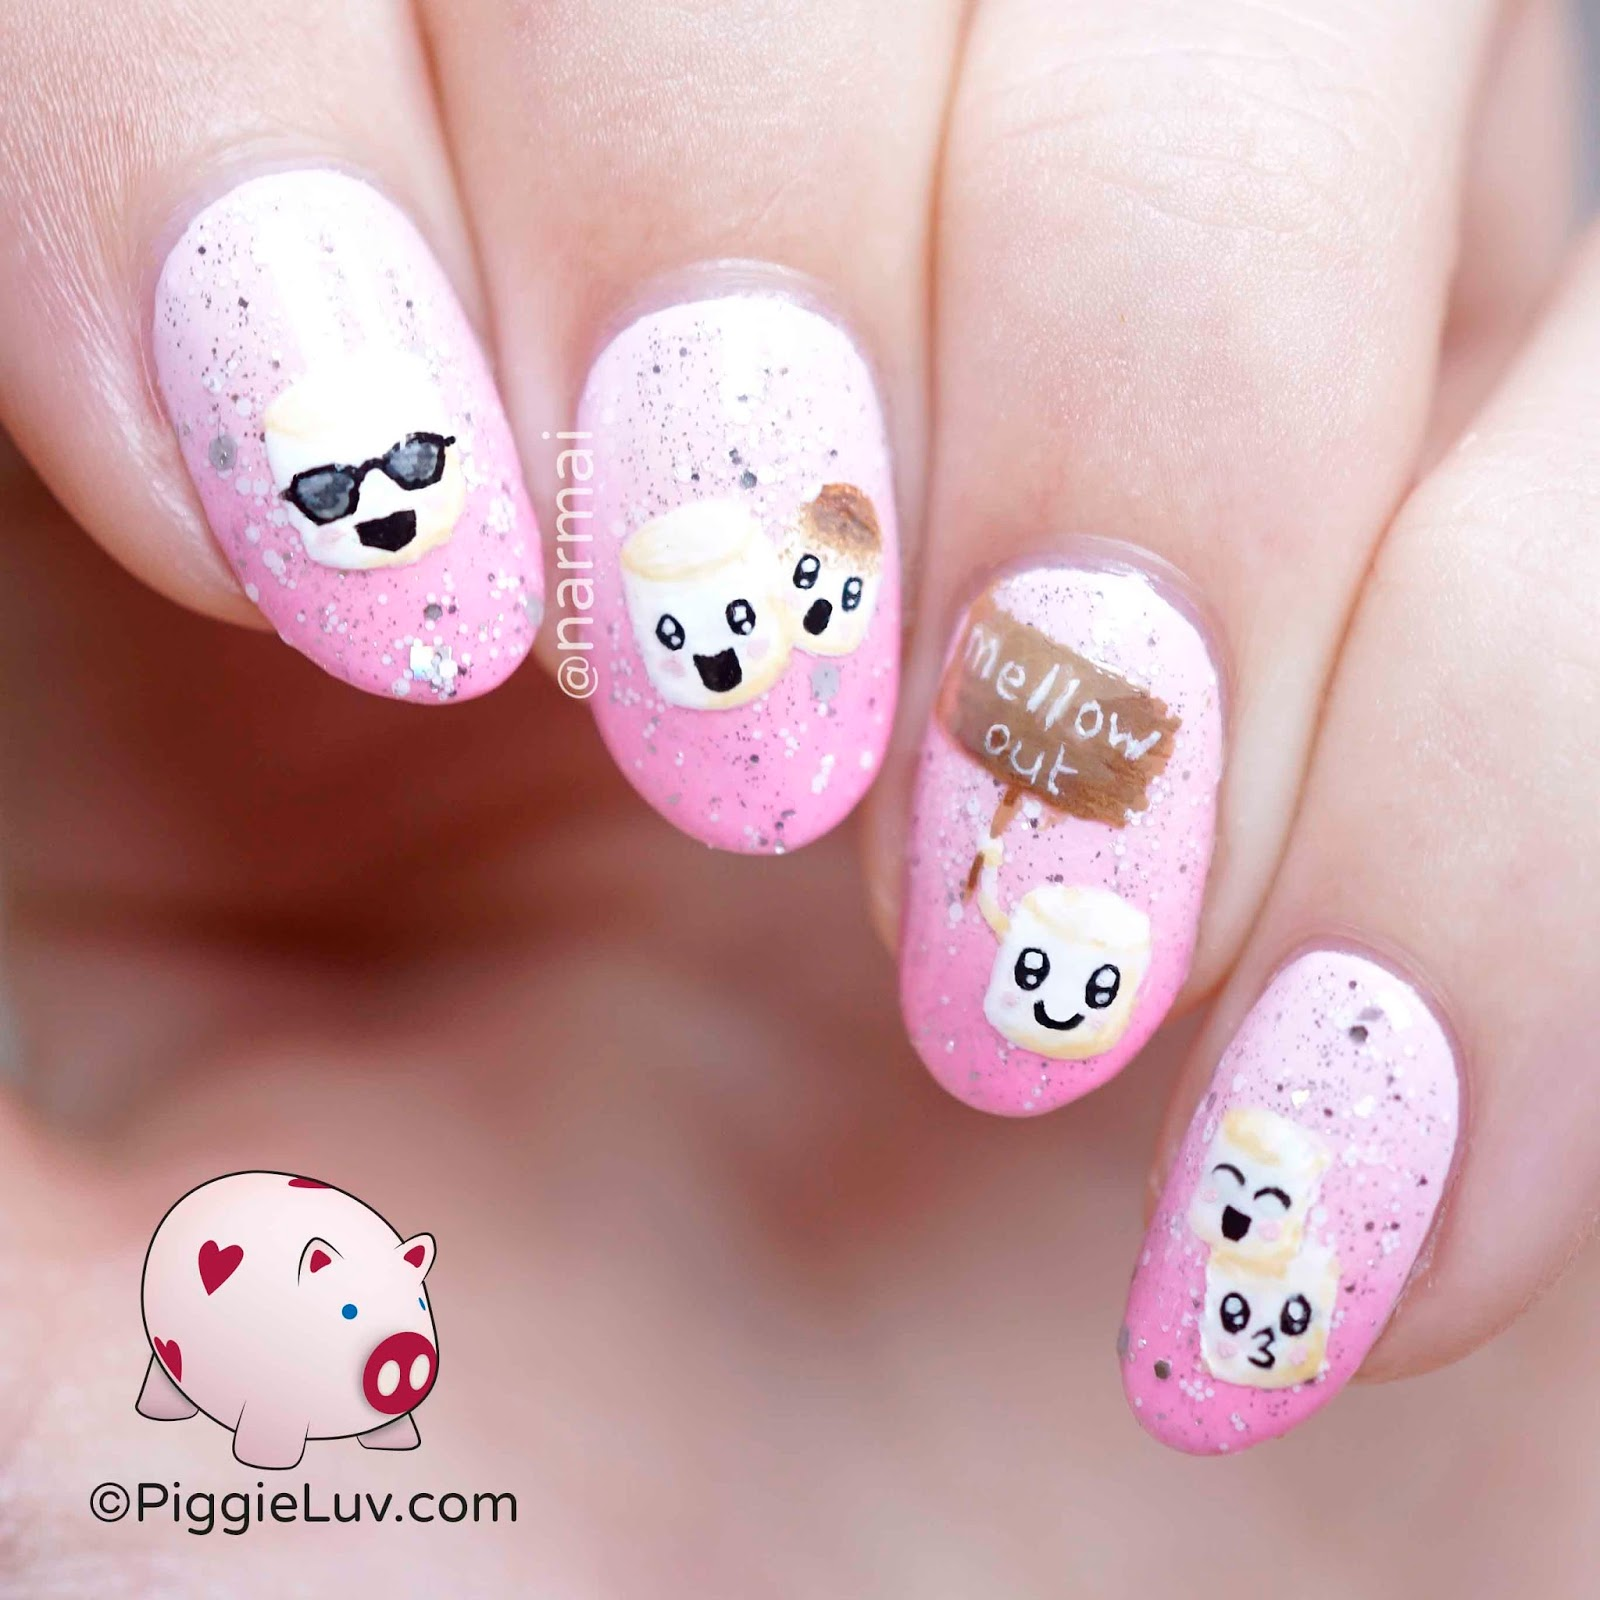 PiggieLuv: Kawaii marshmallows nail art